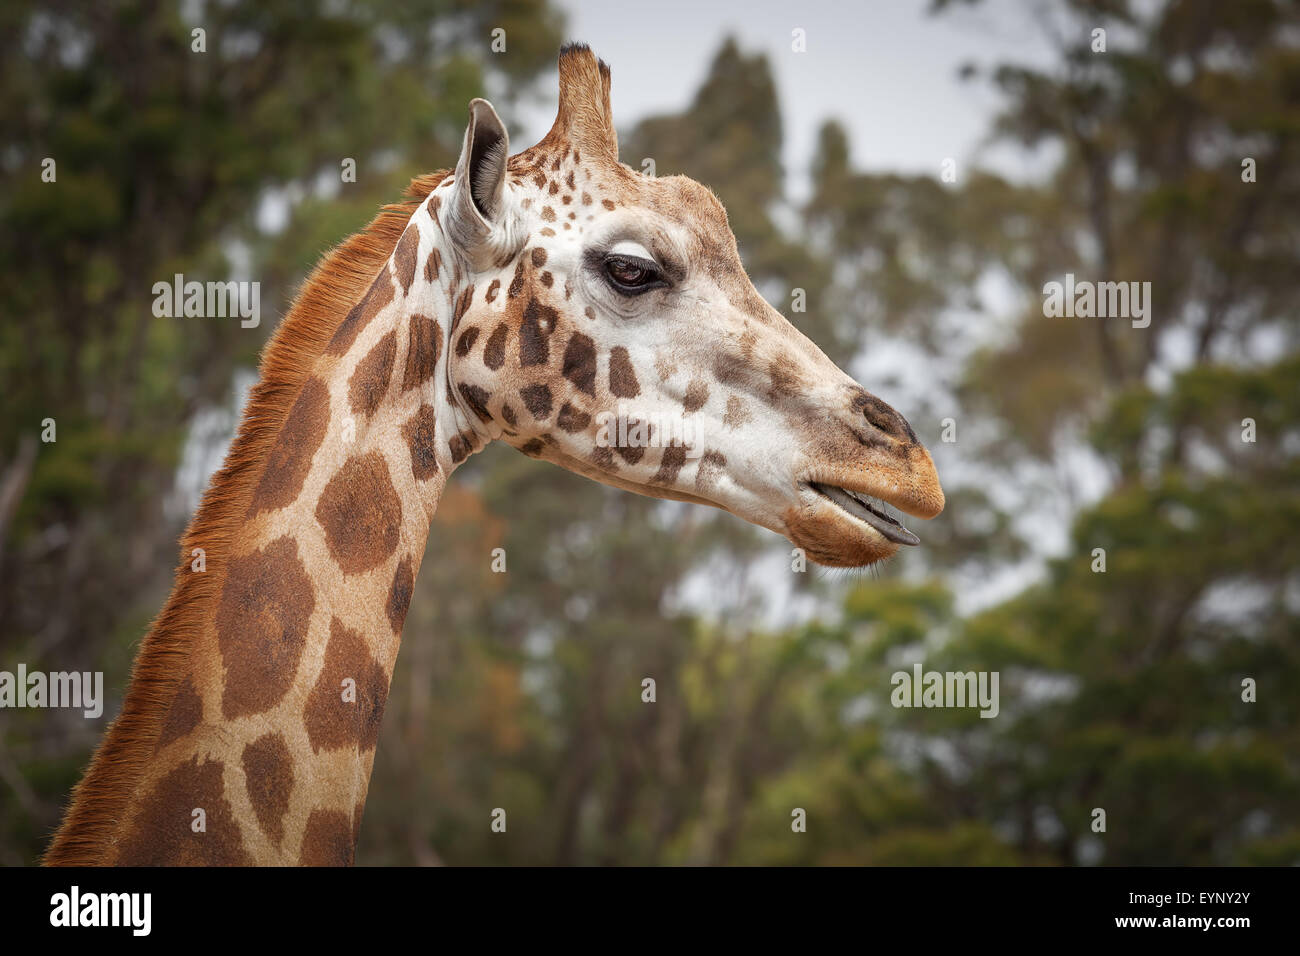 Closeup portrait of Giraffe with its tongue out - Stock Image